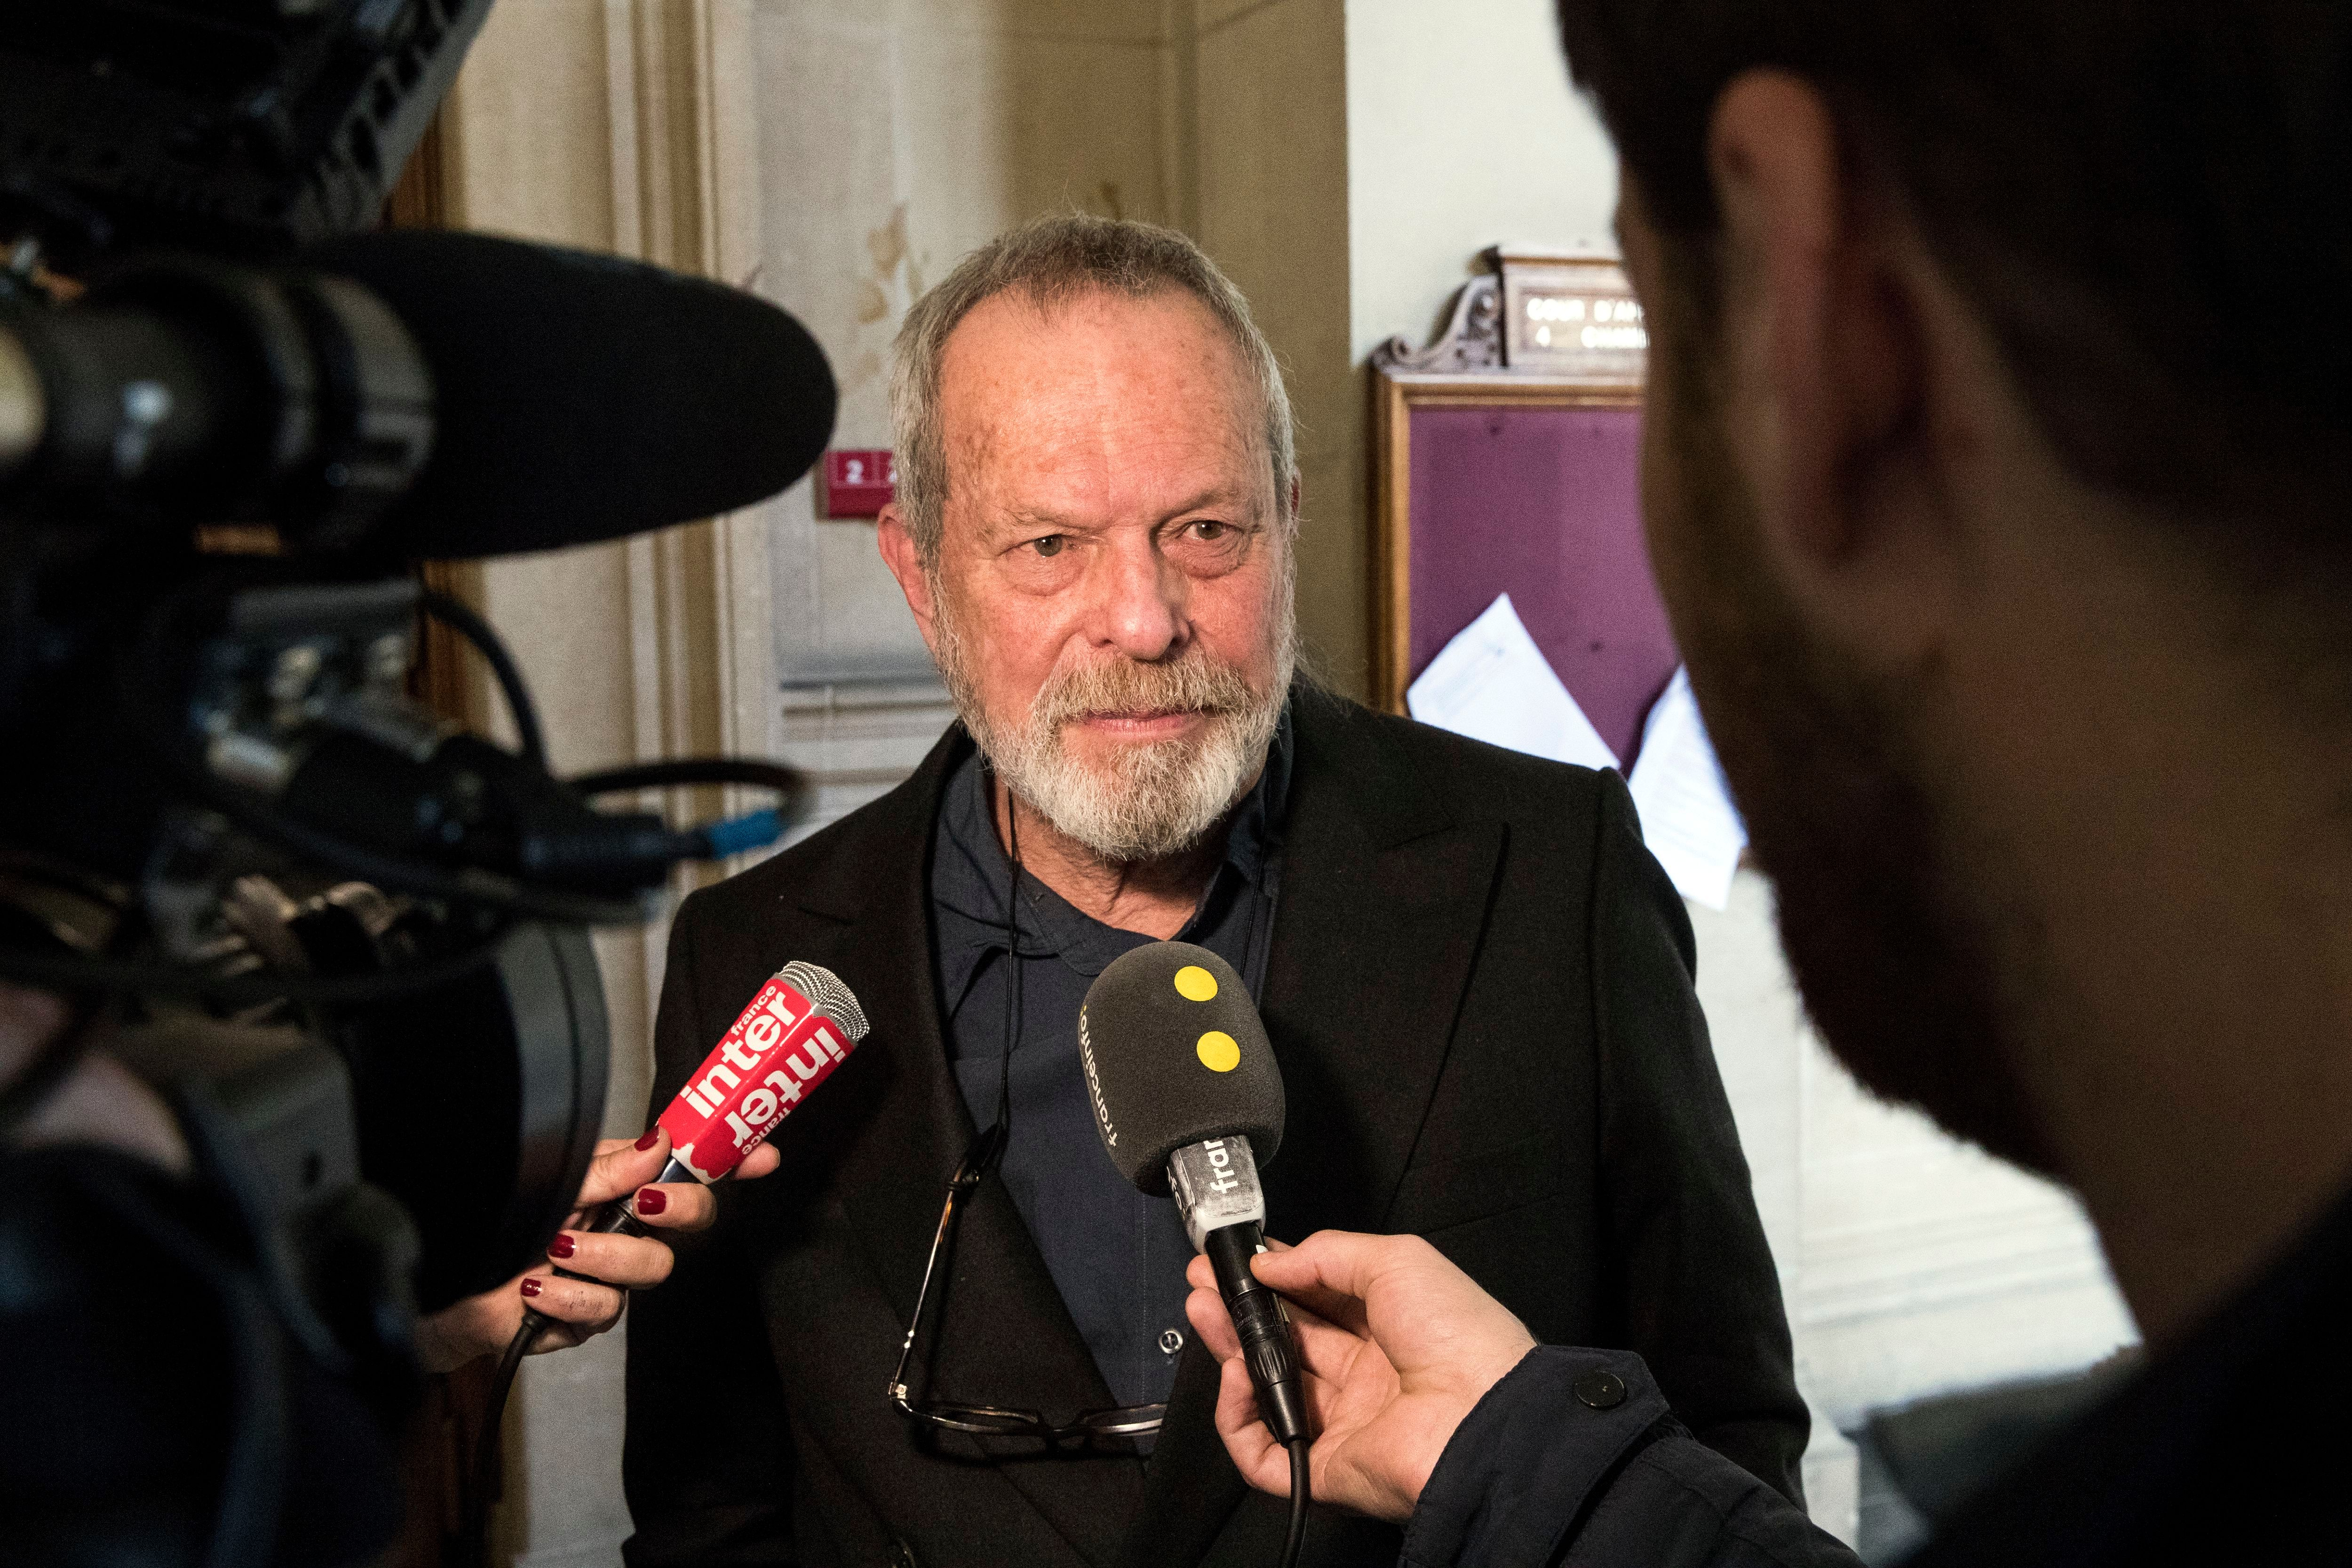 Terry GilliamBritish director Terry Gilliam's hearing at Court of Appeal in Paris, France - 04 Apr 2018 US-born British director Terry Gilliam answers questions from the media as he leaves the Court of Appeal after a hearing, in Paris, France, 04 April 2018. The case sees director Terry Gilliam and Portuguese producer Paulo Branco battling for the rights to the fillm 'The Man Who Killed Don Quixote'.